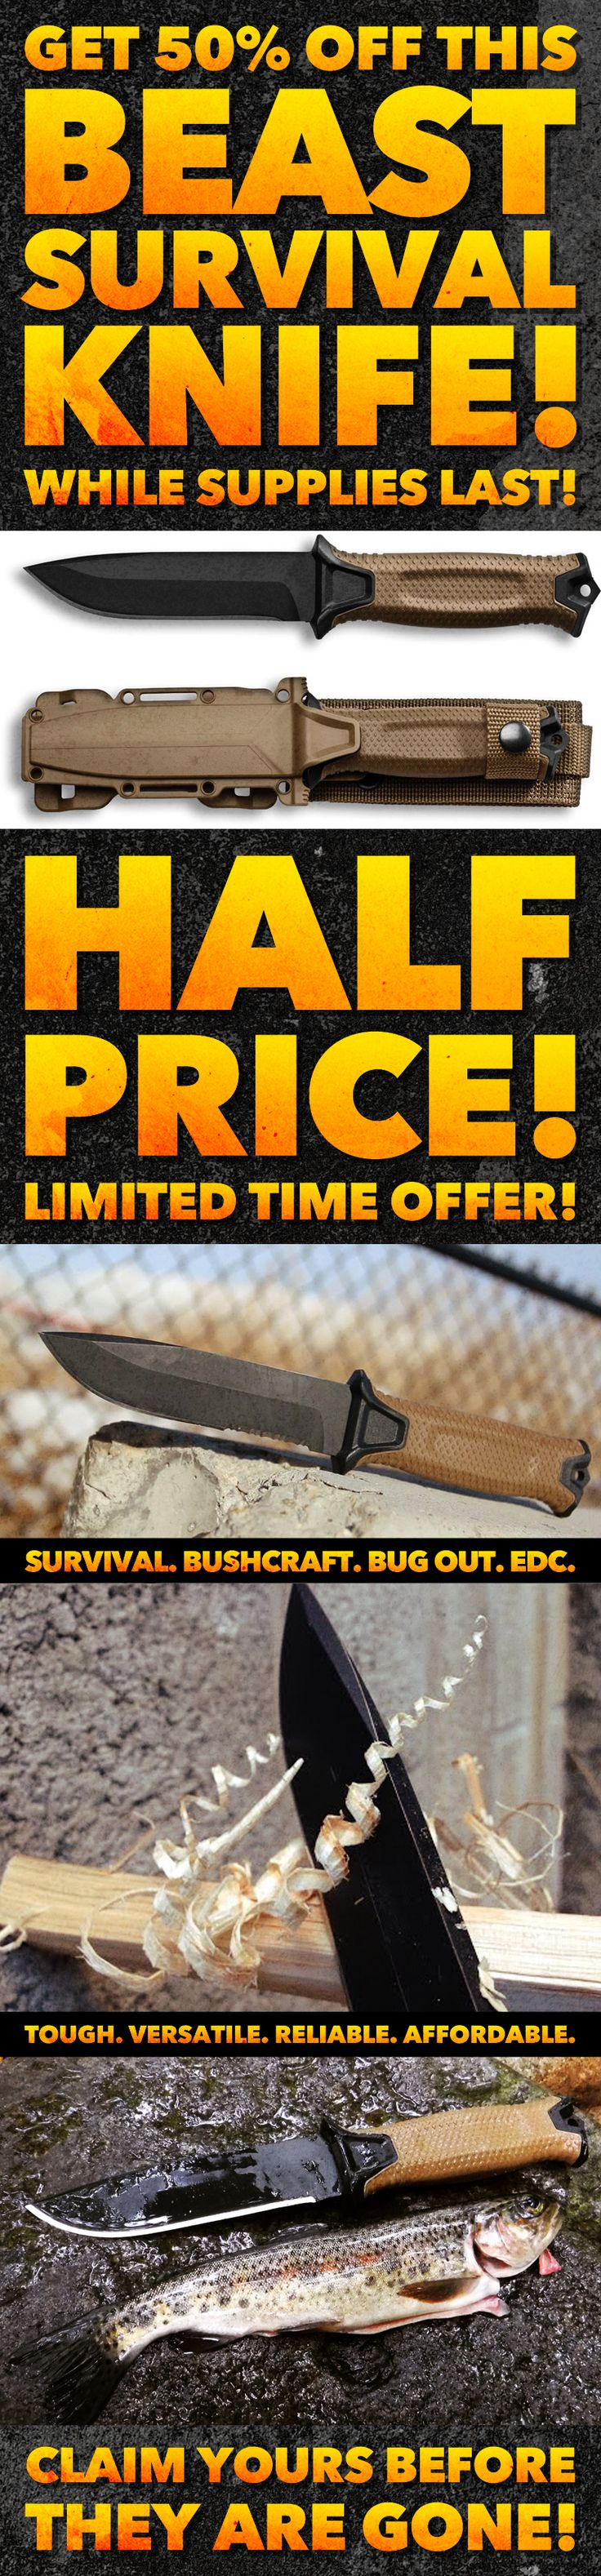 50% OFF RETAIL VALUE for this awesome bushcraft & survival knife!! This knife is tough, reliable, versatile and now MORE AFFORDABLE than ever!! Regularly $79.99 now ONLY $39.99!! LIMITED TIME OFFER!! Grab yours while you can! Awesome for survival, bushcraft, EDC, camping and more! CLAIM YOURS BEFORE THEY ARE GONE!!